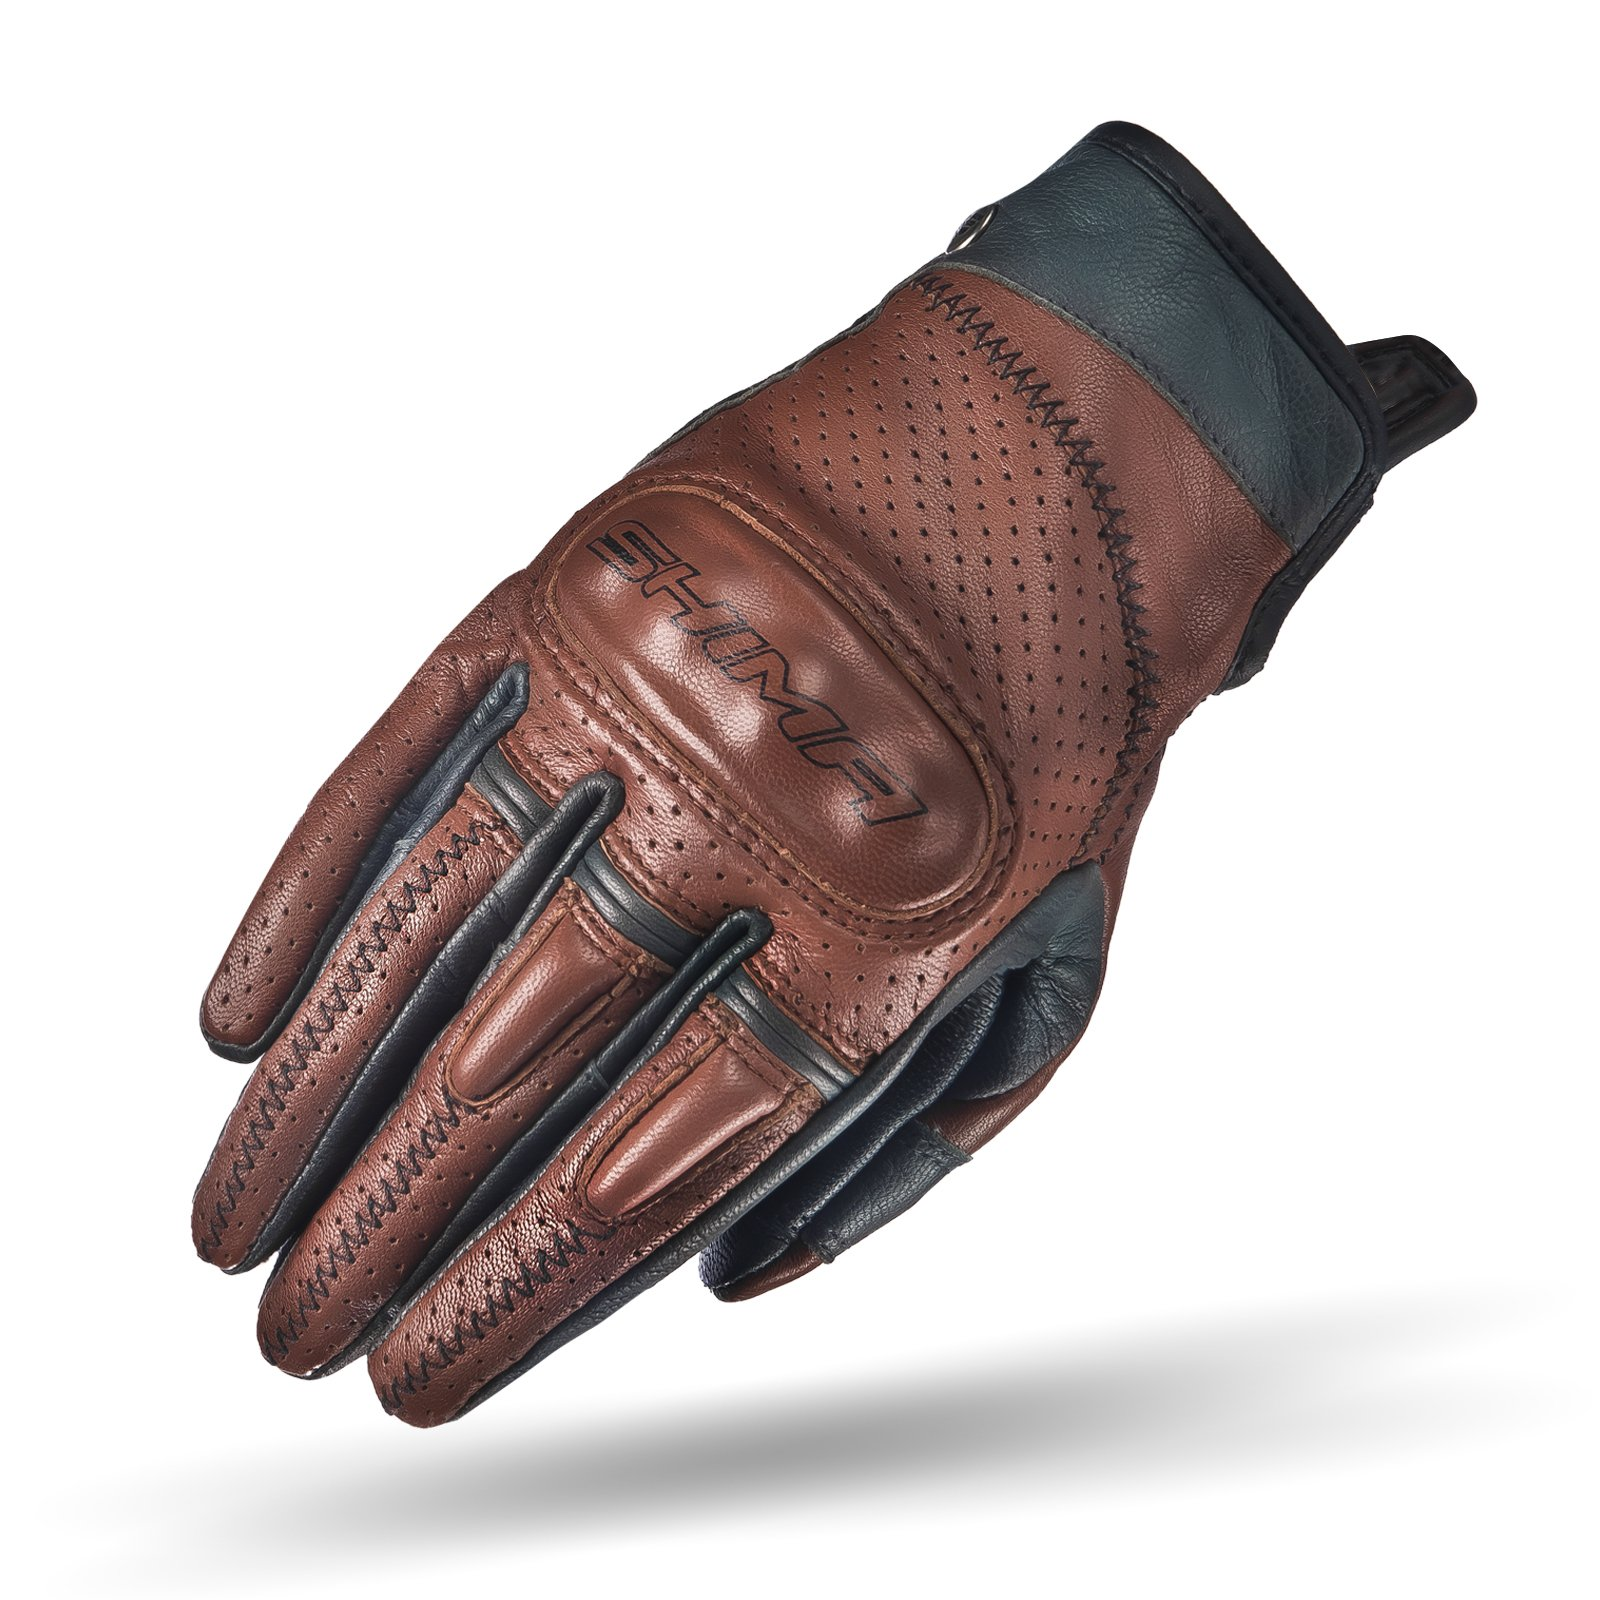 SHIMA CALIBER LADY, Women Retro Vintage Custom Summer Leather Motorcycle Gloves (XS/S/M/L) (L, Brown) by SHIMA (Image #1)